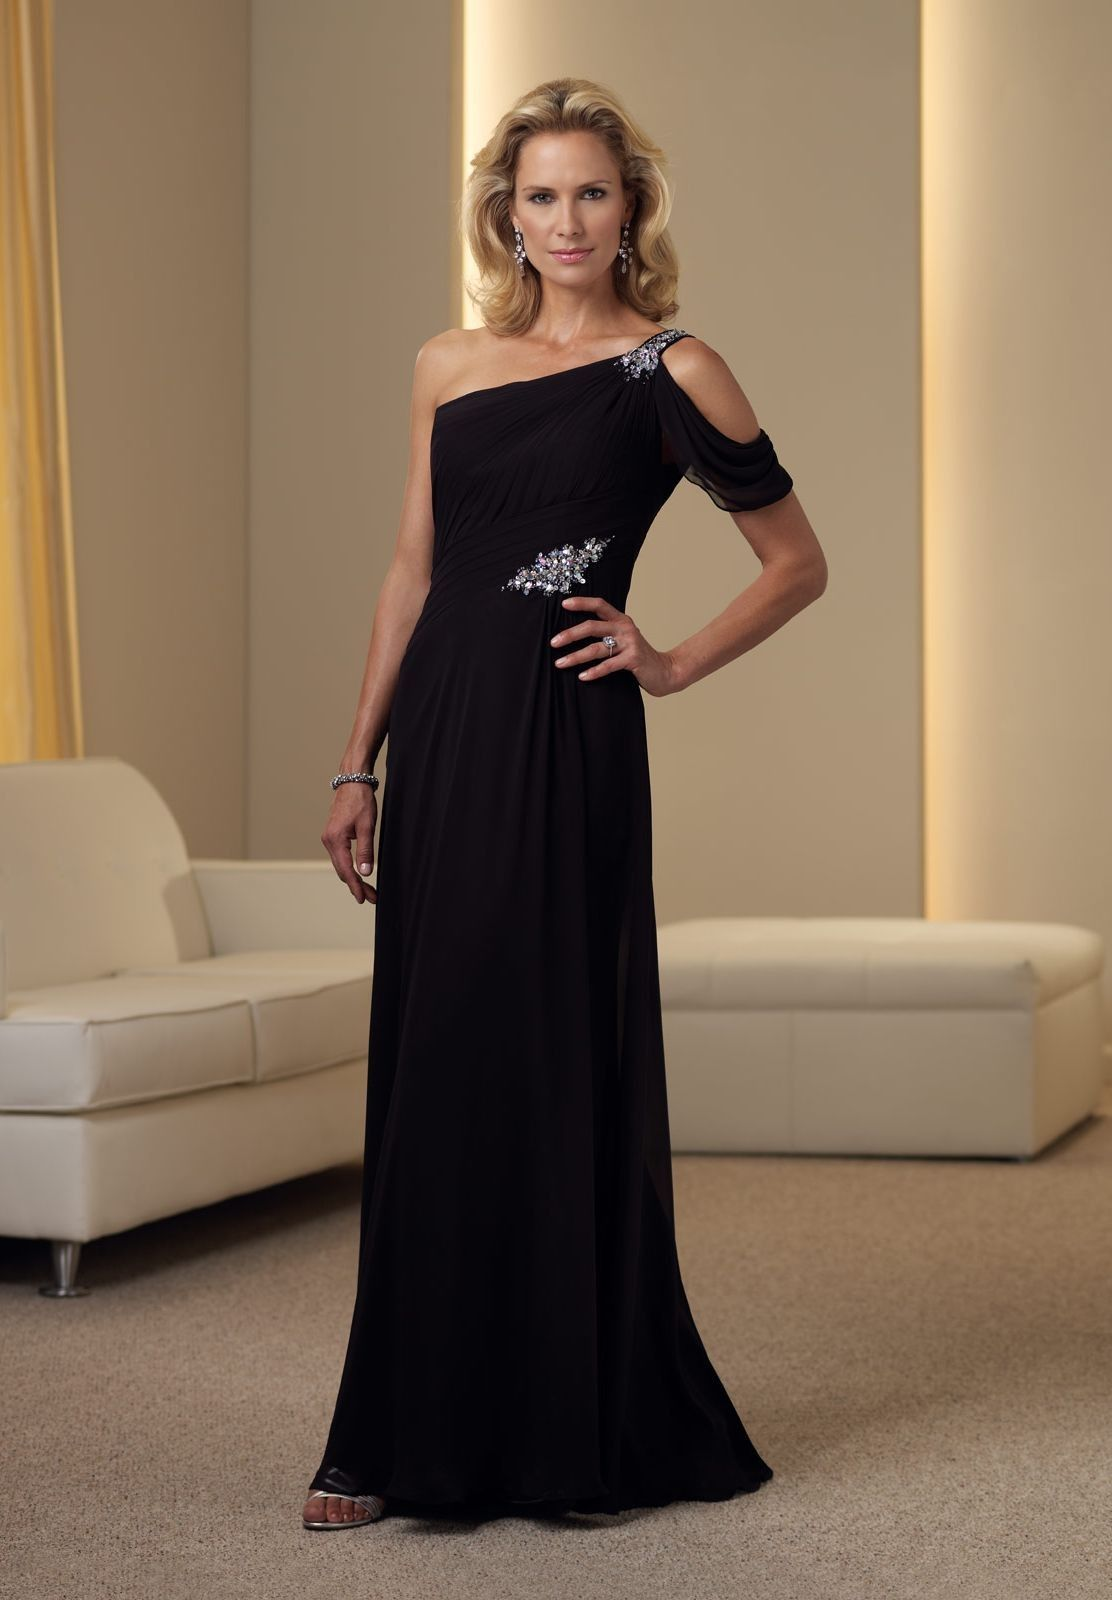 d5d71bf9f8a 20 Mother of the Bride Dresses - Chic and Youthful Styles